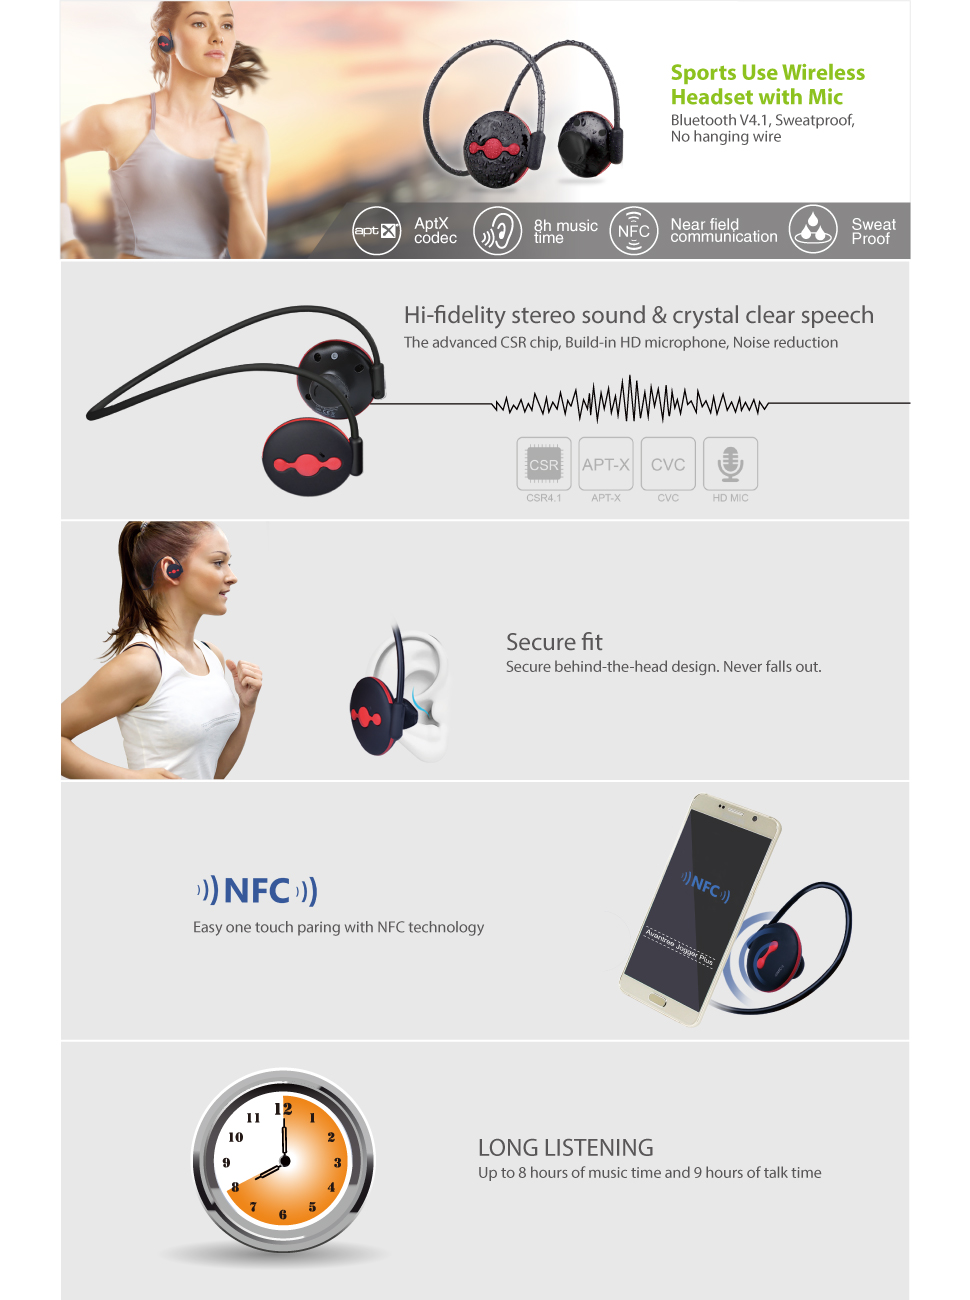 Avantree Bluetooth Headphones, Stereo Sweatproof Sports Earphones with Mic, Wireless V4.1 aptX, for Running Gym In ear foldable